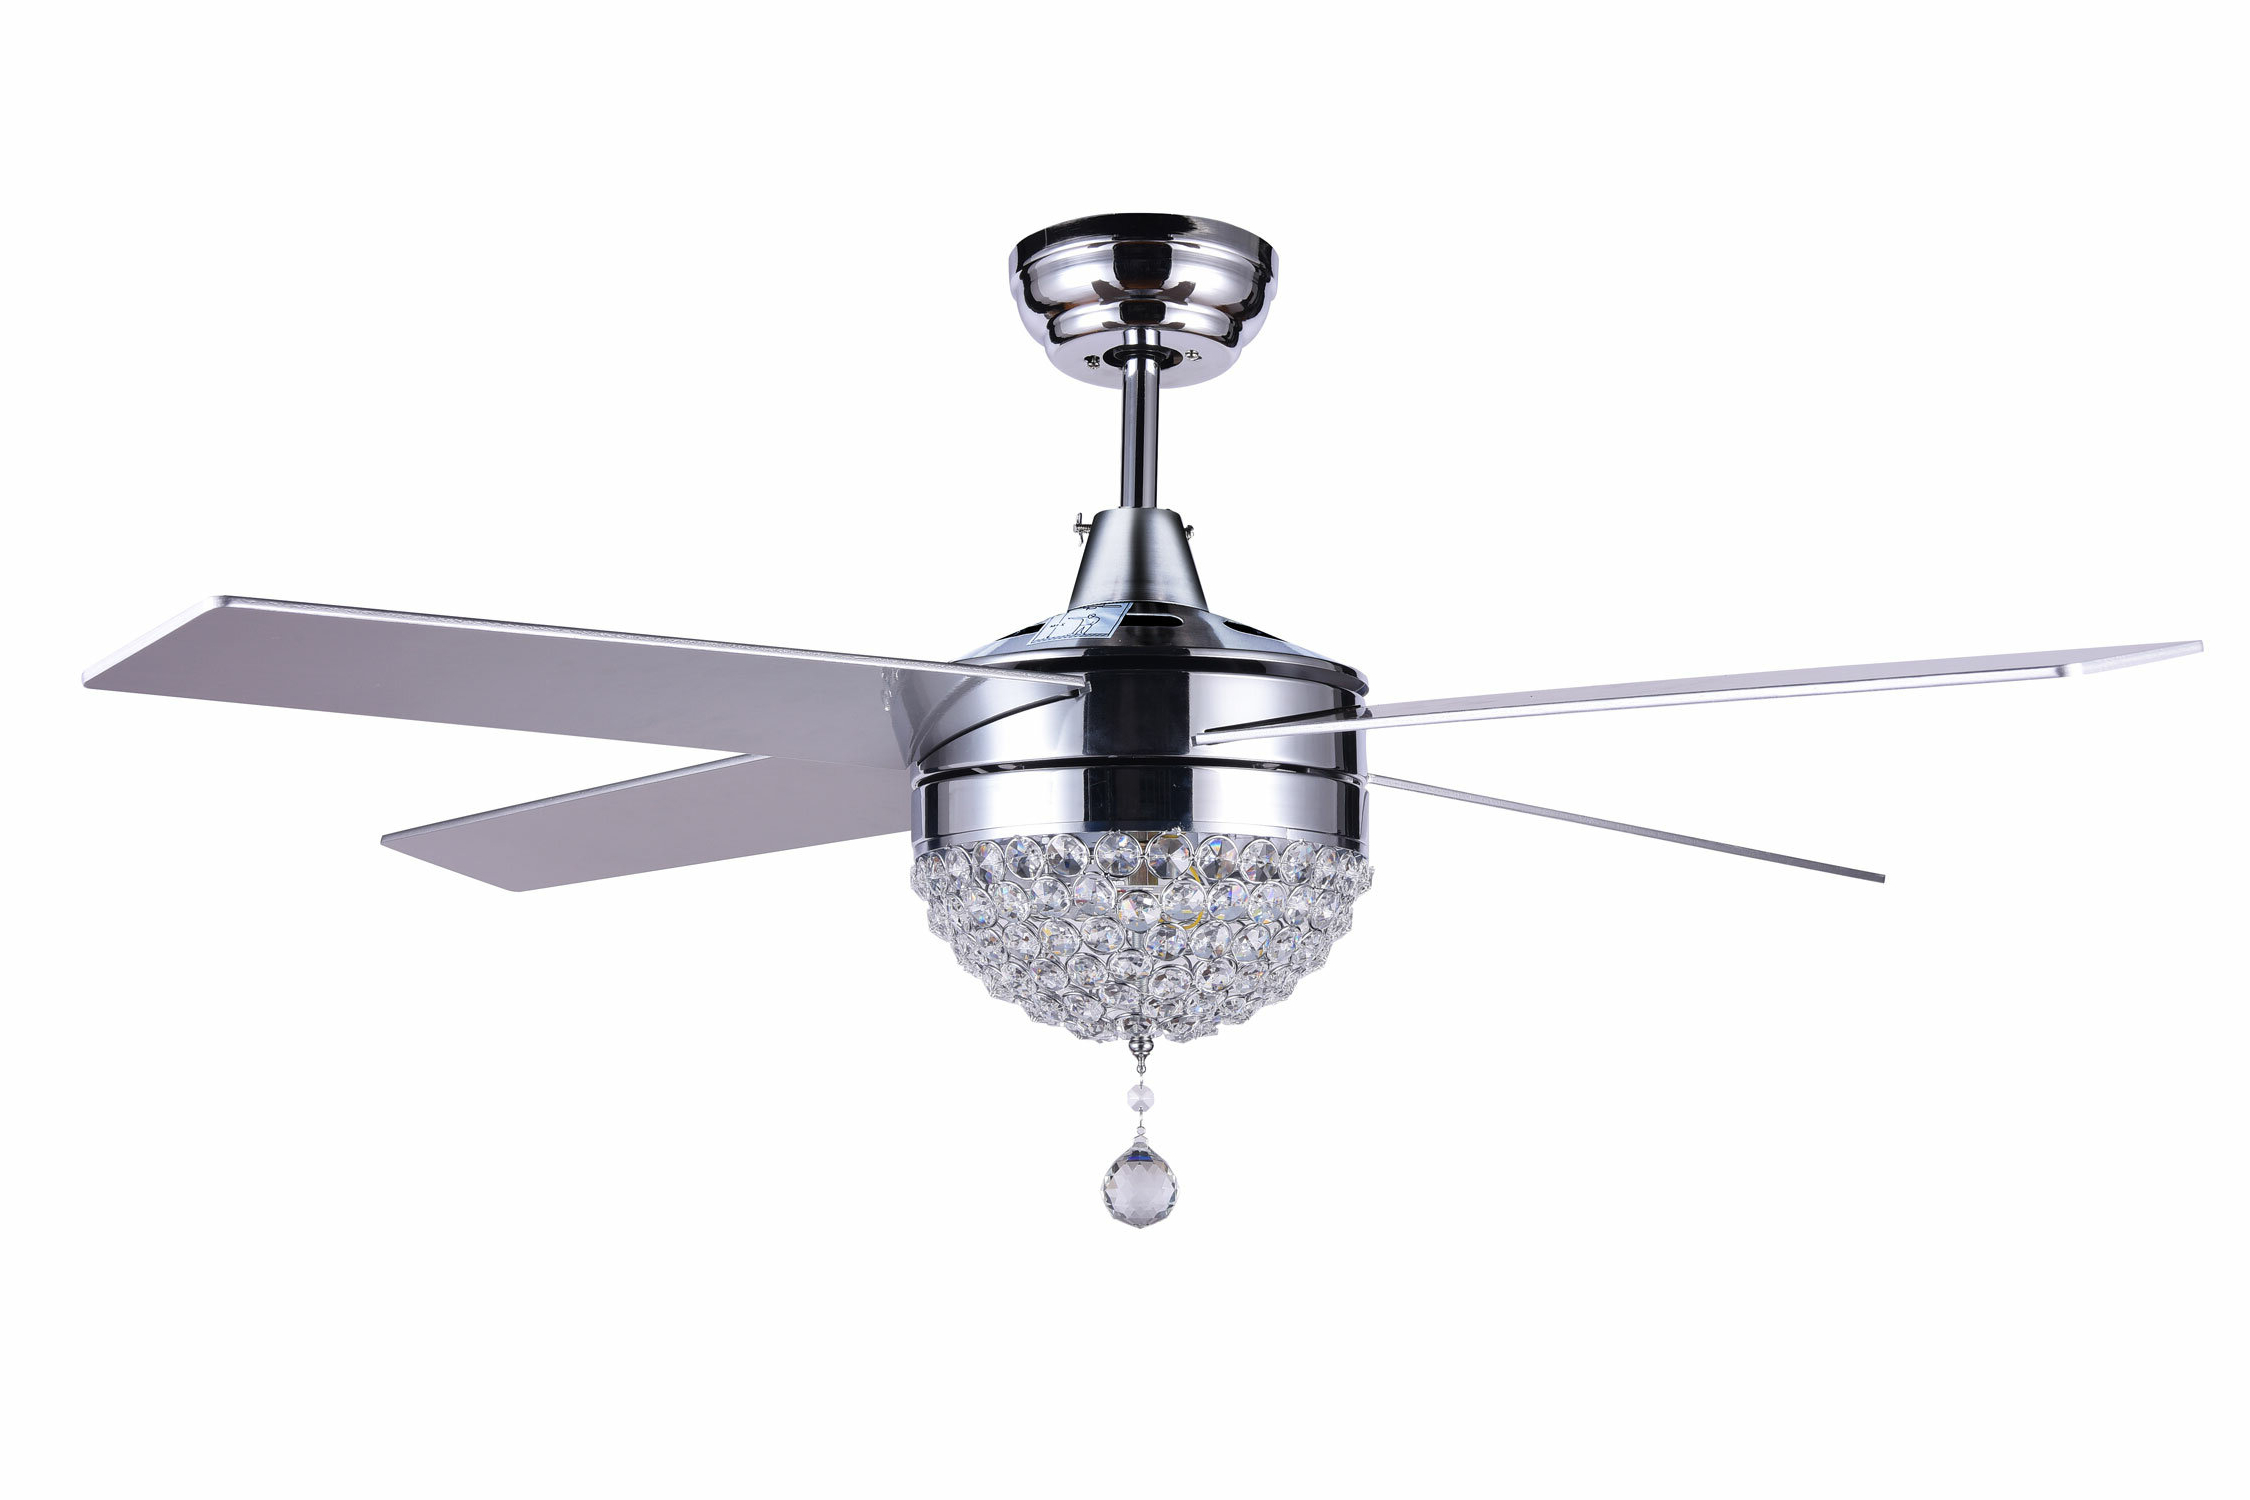 Aalin 4 Blade Led Ceiling Fan With Remote, Light Kit Included Inside 2019 Cason 4 Blade Ceiling Fans (View 4 of 20)